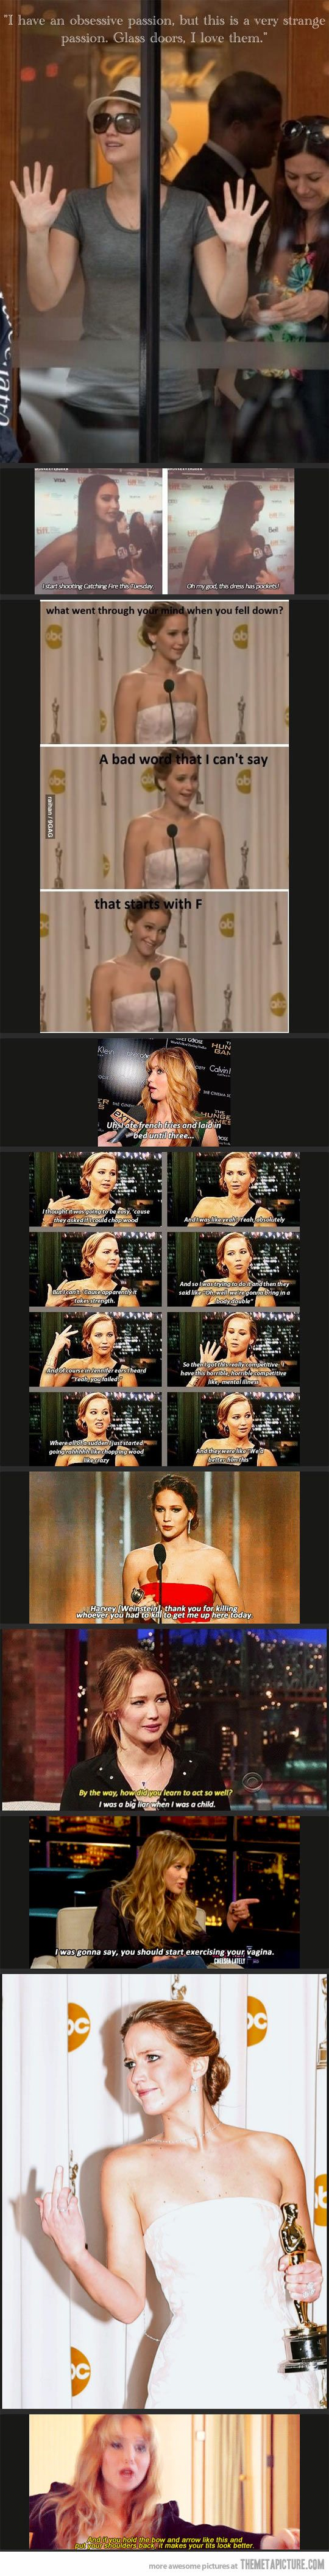 Oh, Jennifer Lawrence… level 10 girl crush